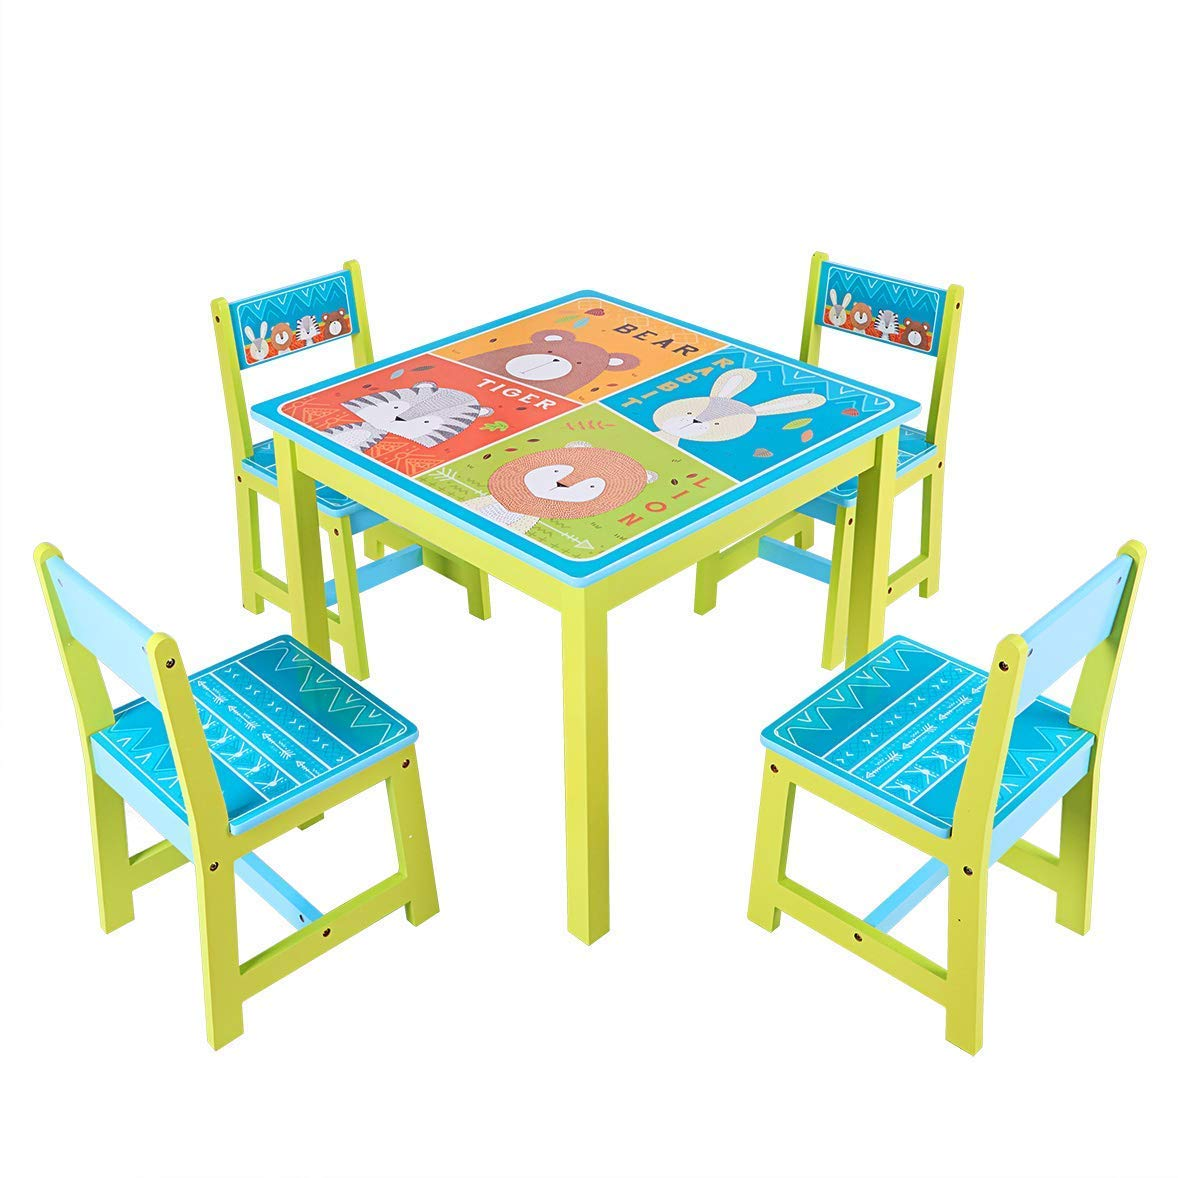 BABY JOY Kids Table and 4 Chairs Set, Wooden MDF Desk for Studying Playing Dining Indoors & Outdoors Activity, Toddler Baby Gift Desk Furniture Cartoon Pattern (Table and 4 Chairs) by BABY JOY (Image #2)